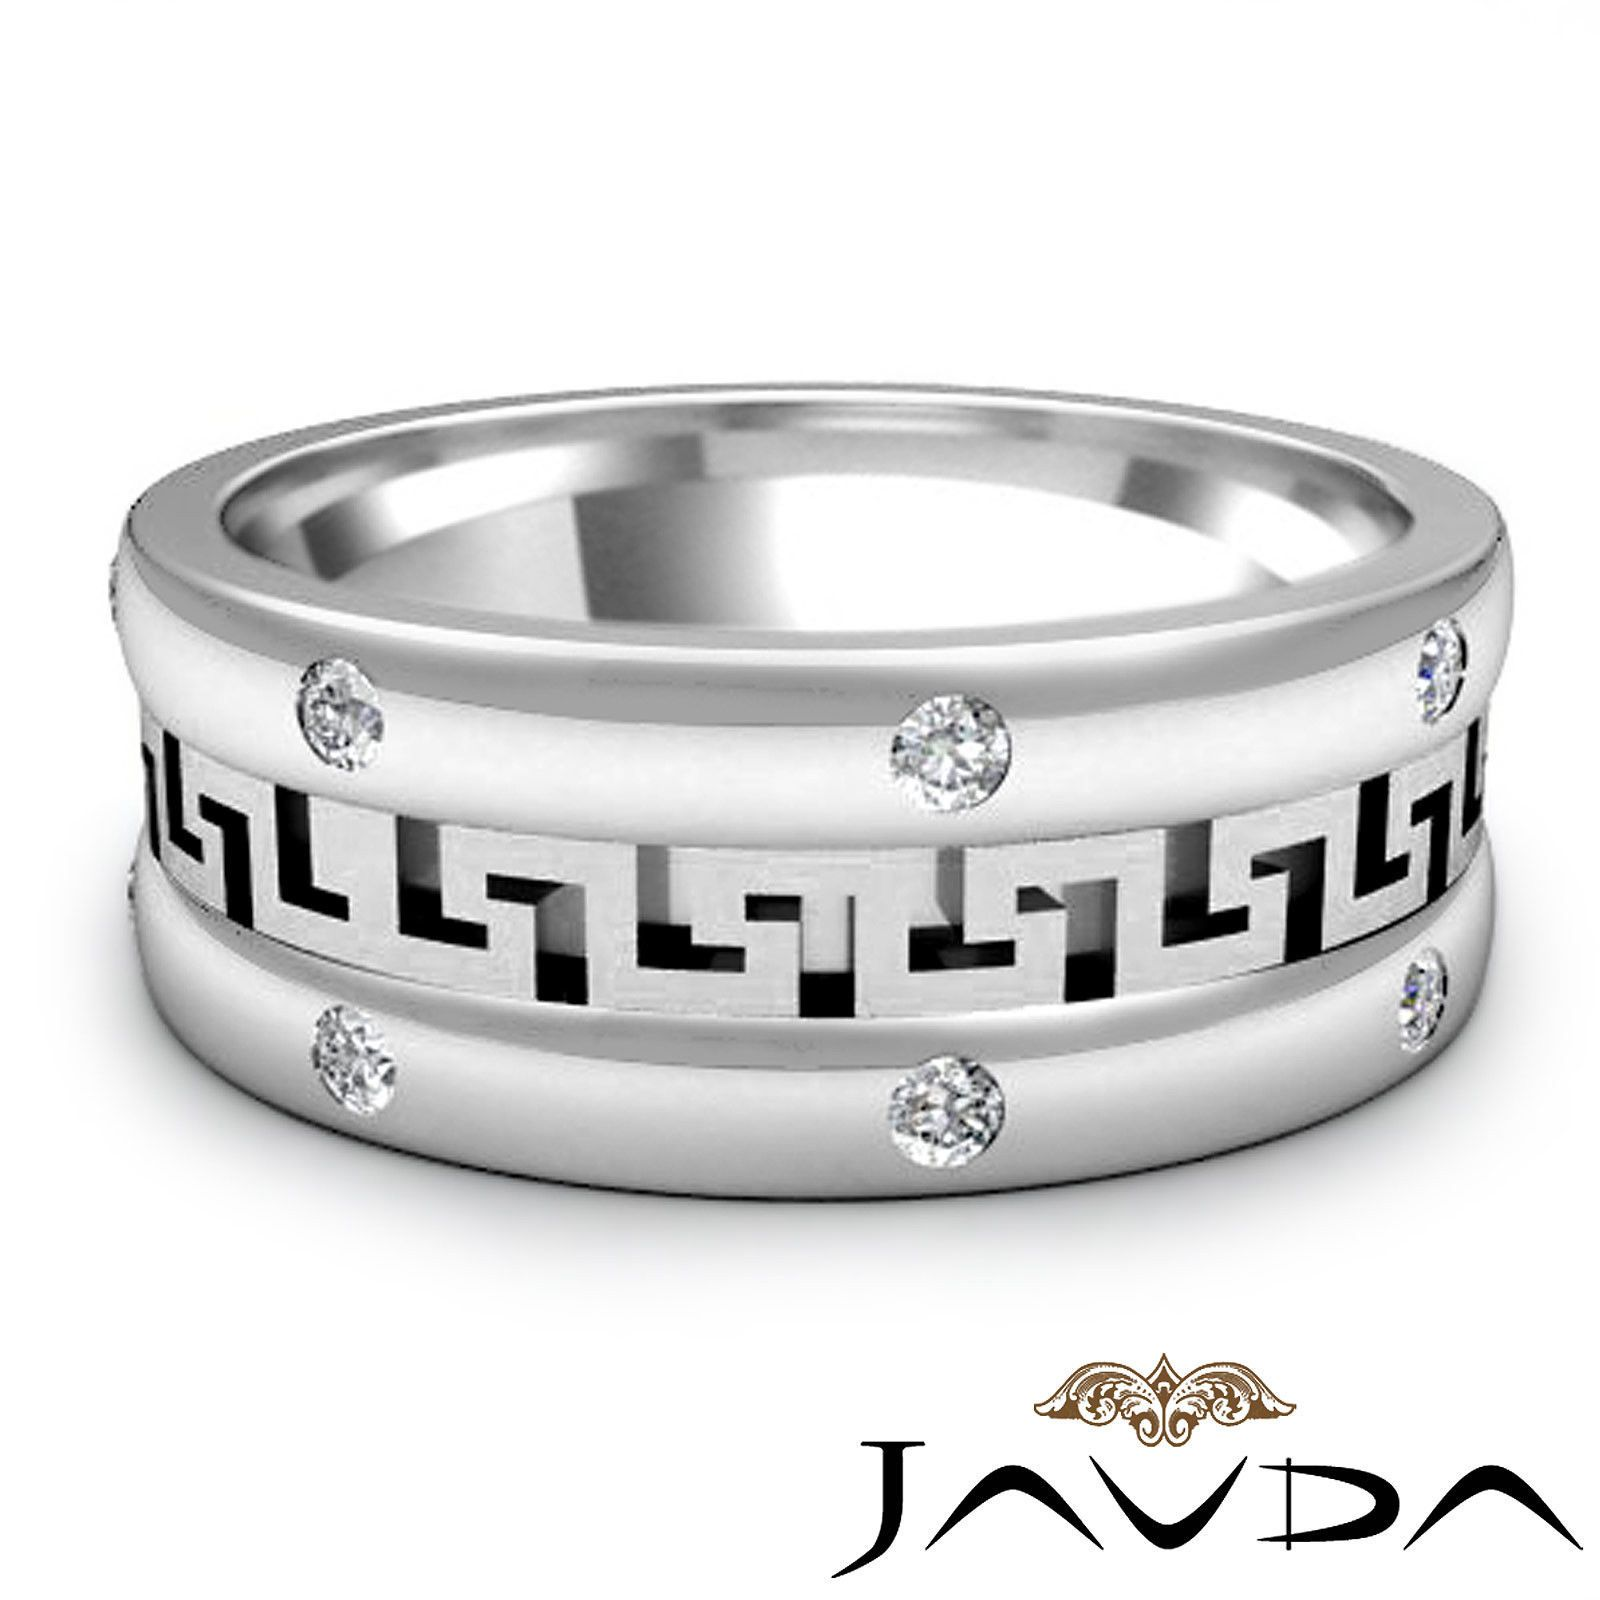 Details about Mens Wedding Solid Band Round Bezel Diamond